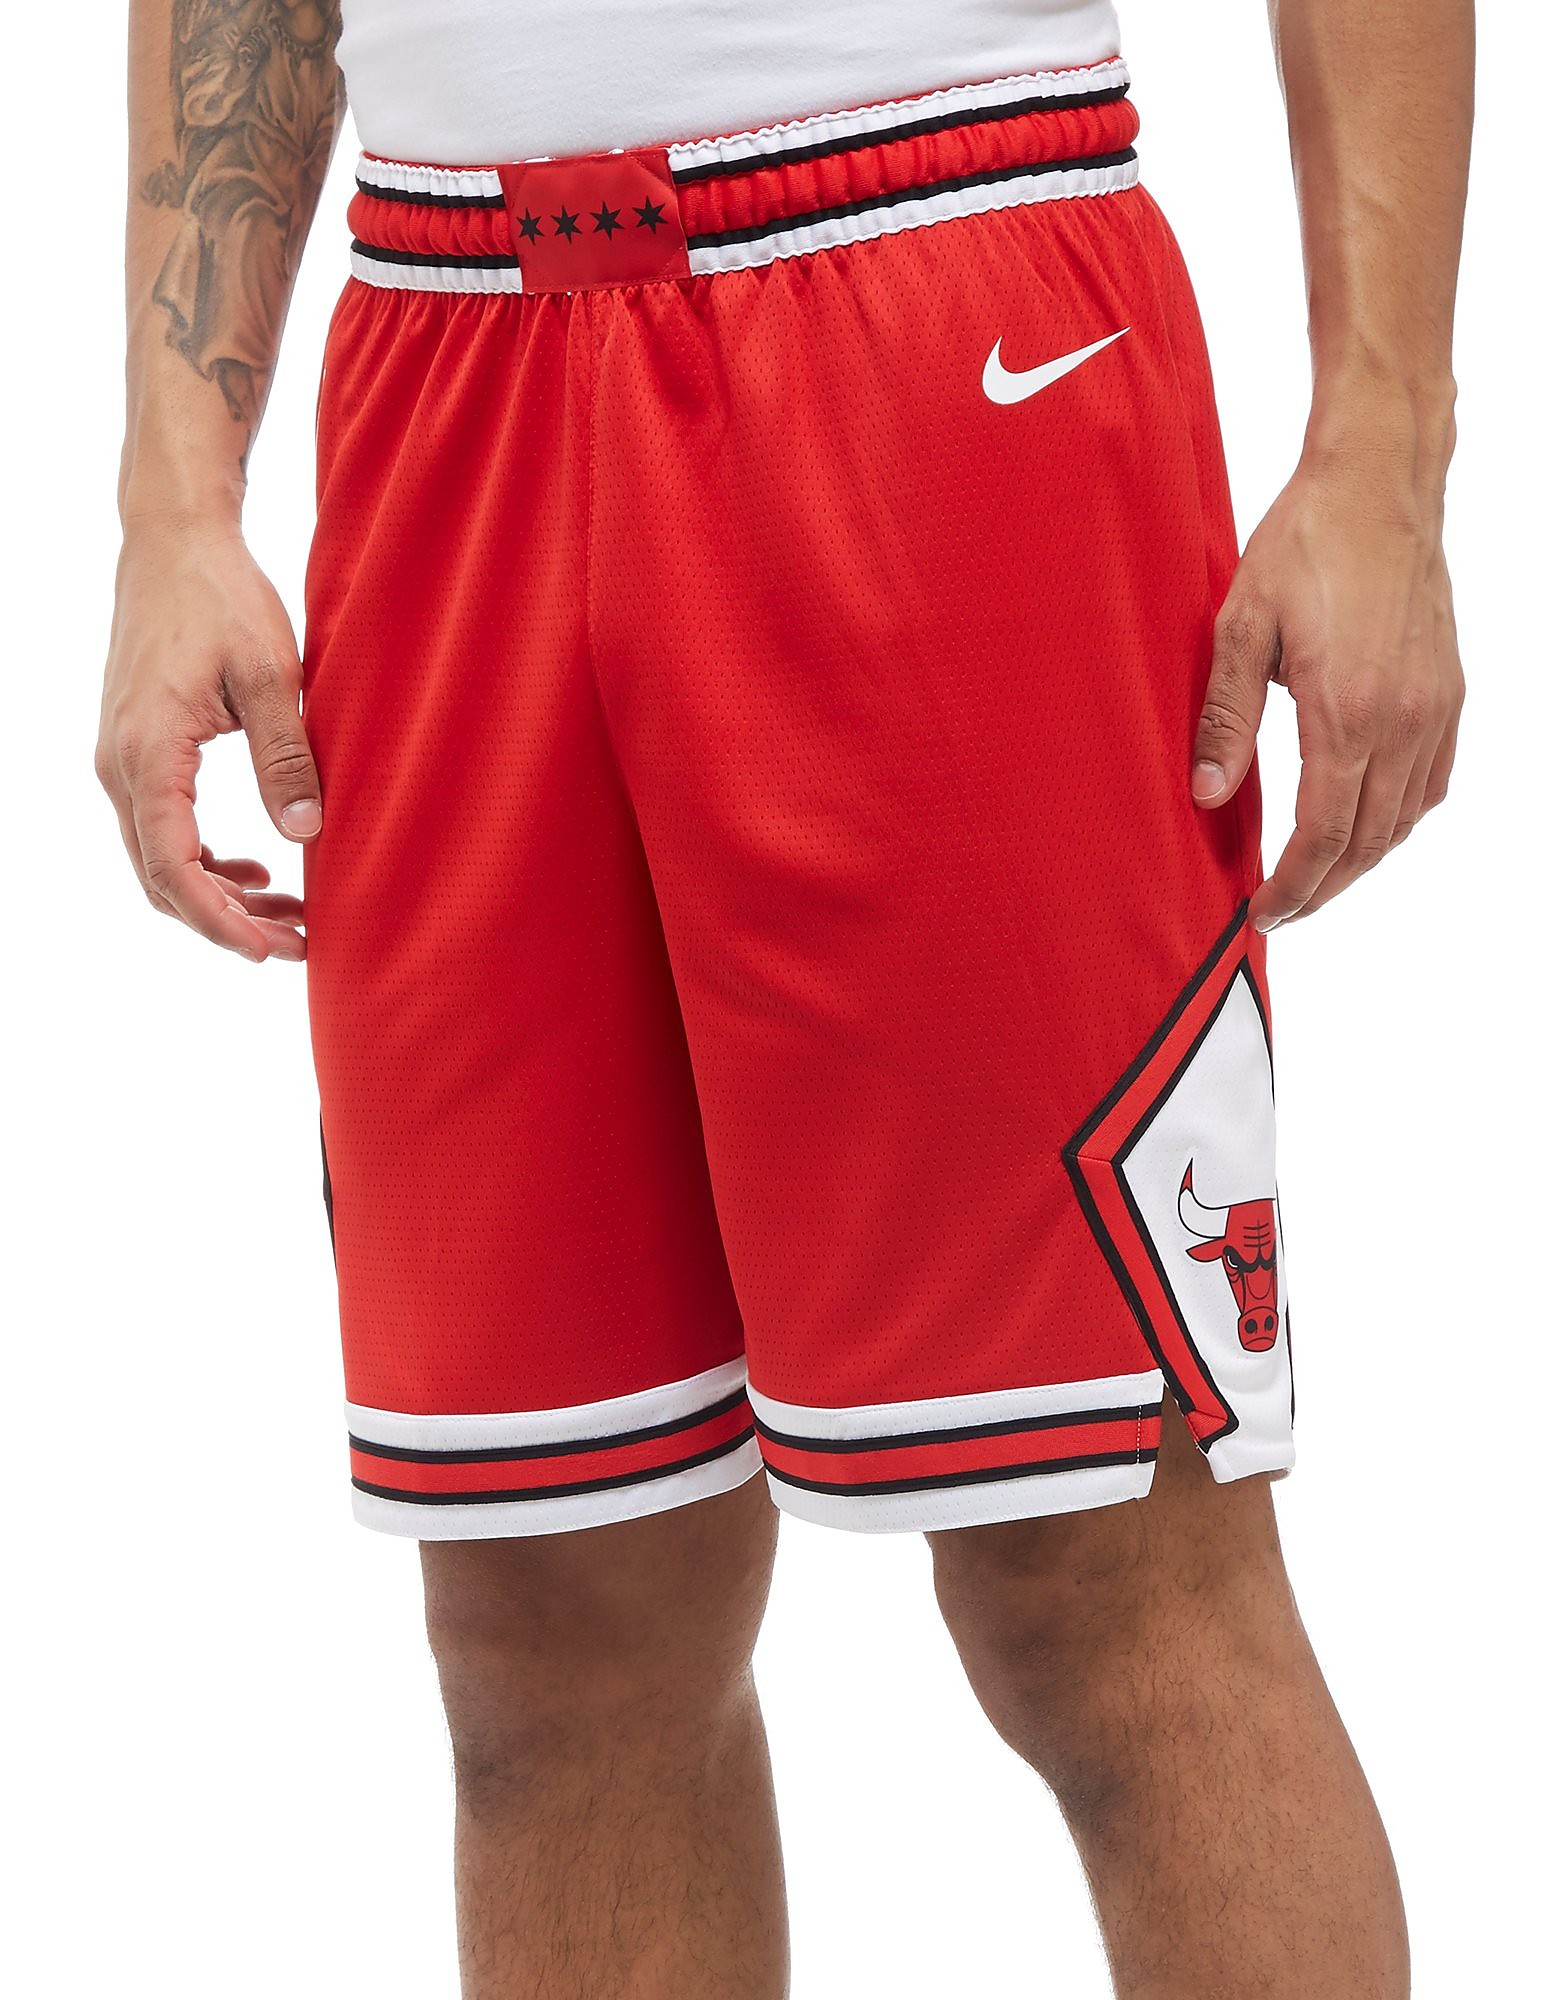 Nike NBA Chicago Bulls Swingman Shorts